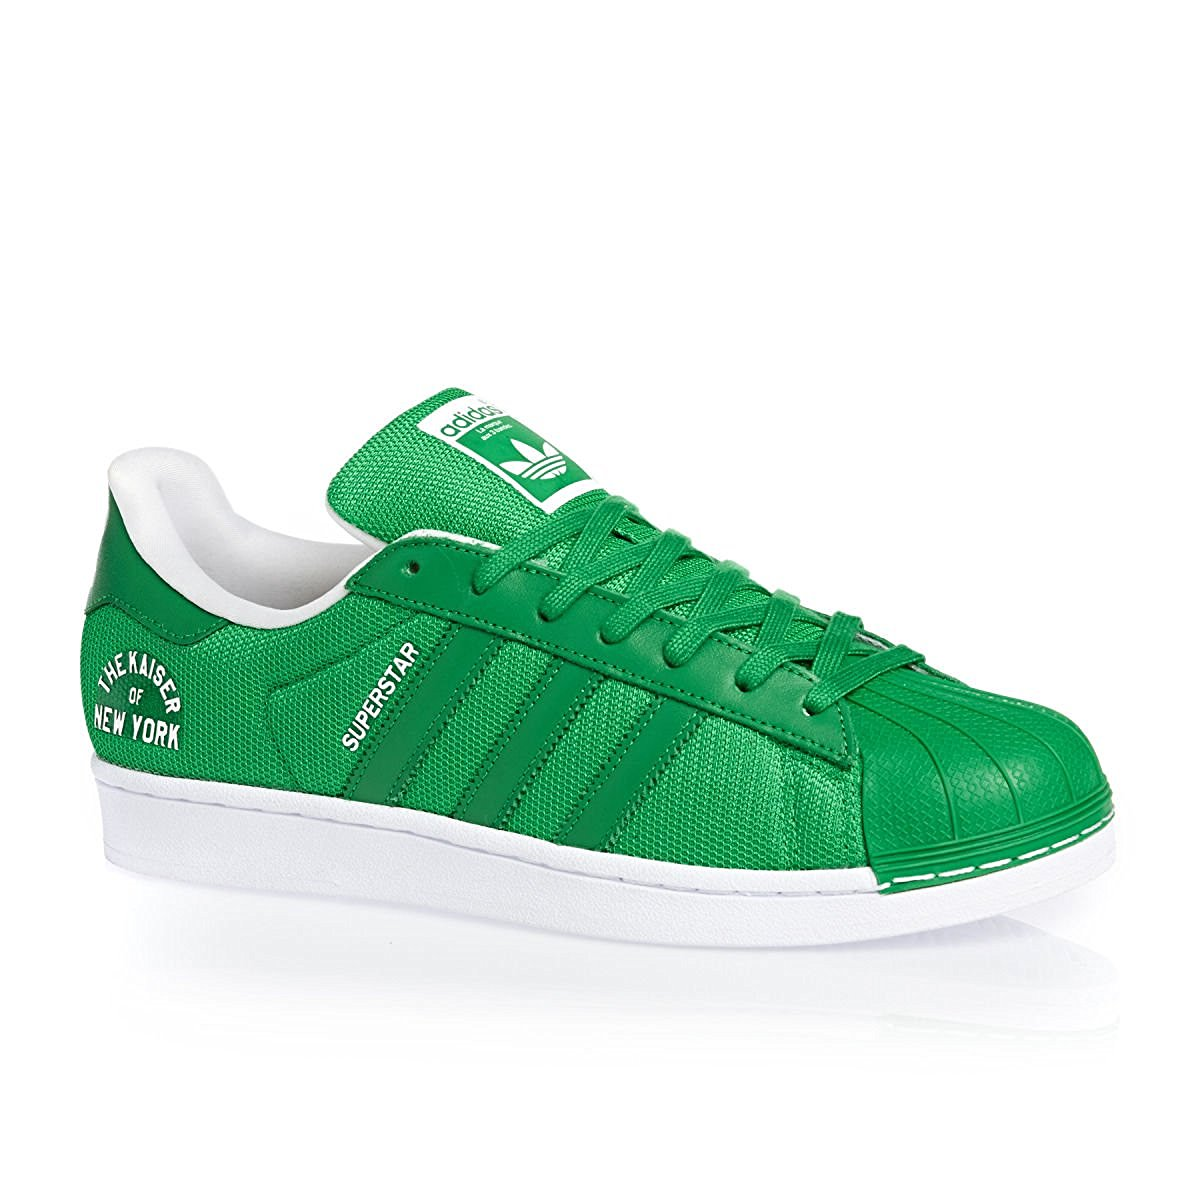 sale retailer d2547 69018 adidas Superstar Foundation (grün/weiß, Herren Sneaker) - sneak3rs.de